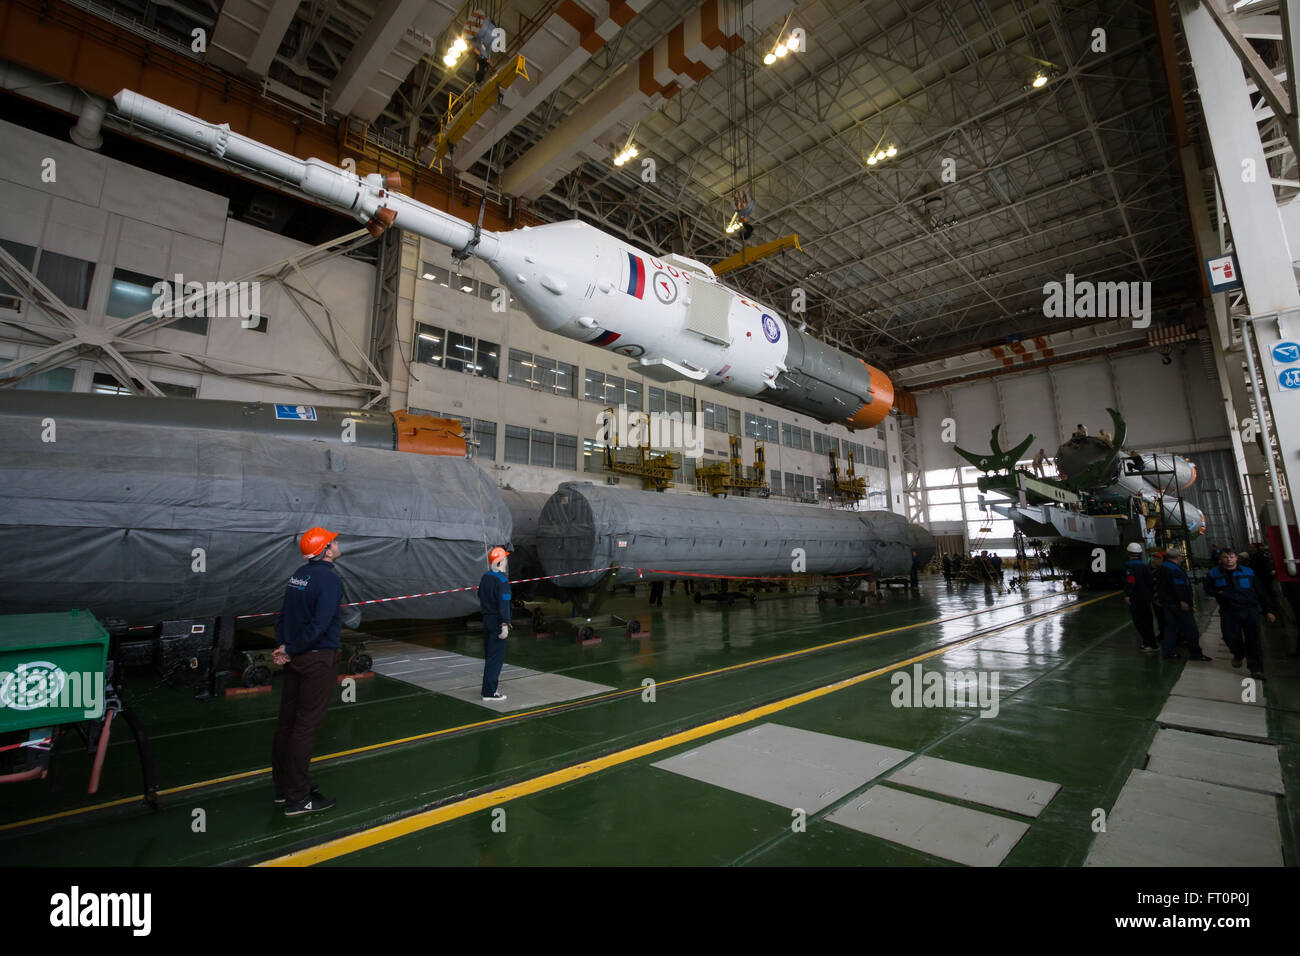 The Soyuz rocket and Soyuz TMA-20M spacecraft is assembled Tuesday, March 15, 2016 at the Baikonur Cosmodrome in - Stock Image